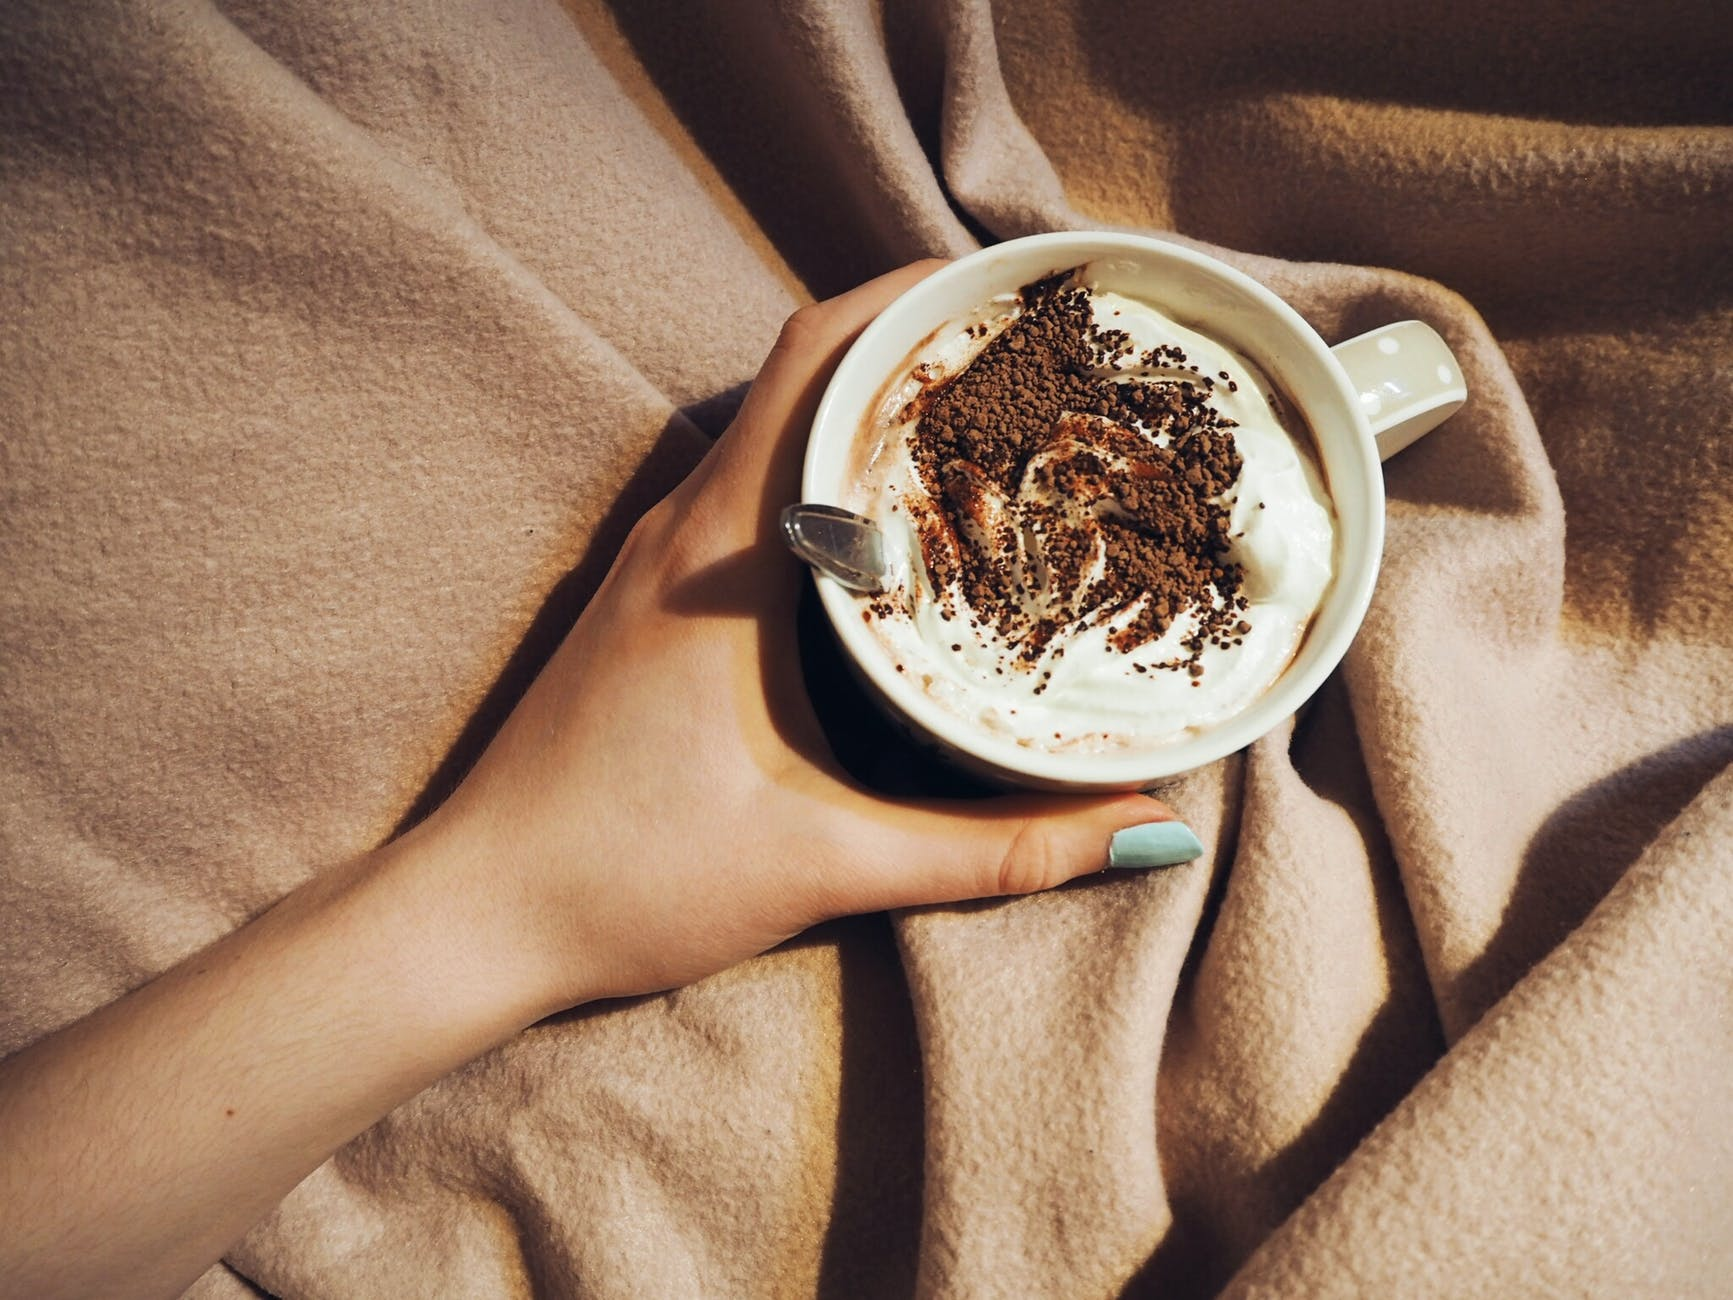 A person tucked up under a blanket holding a hot chocolate